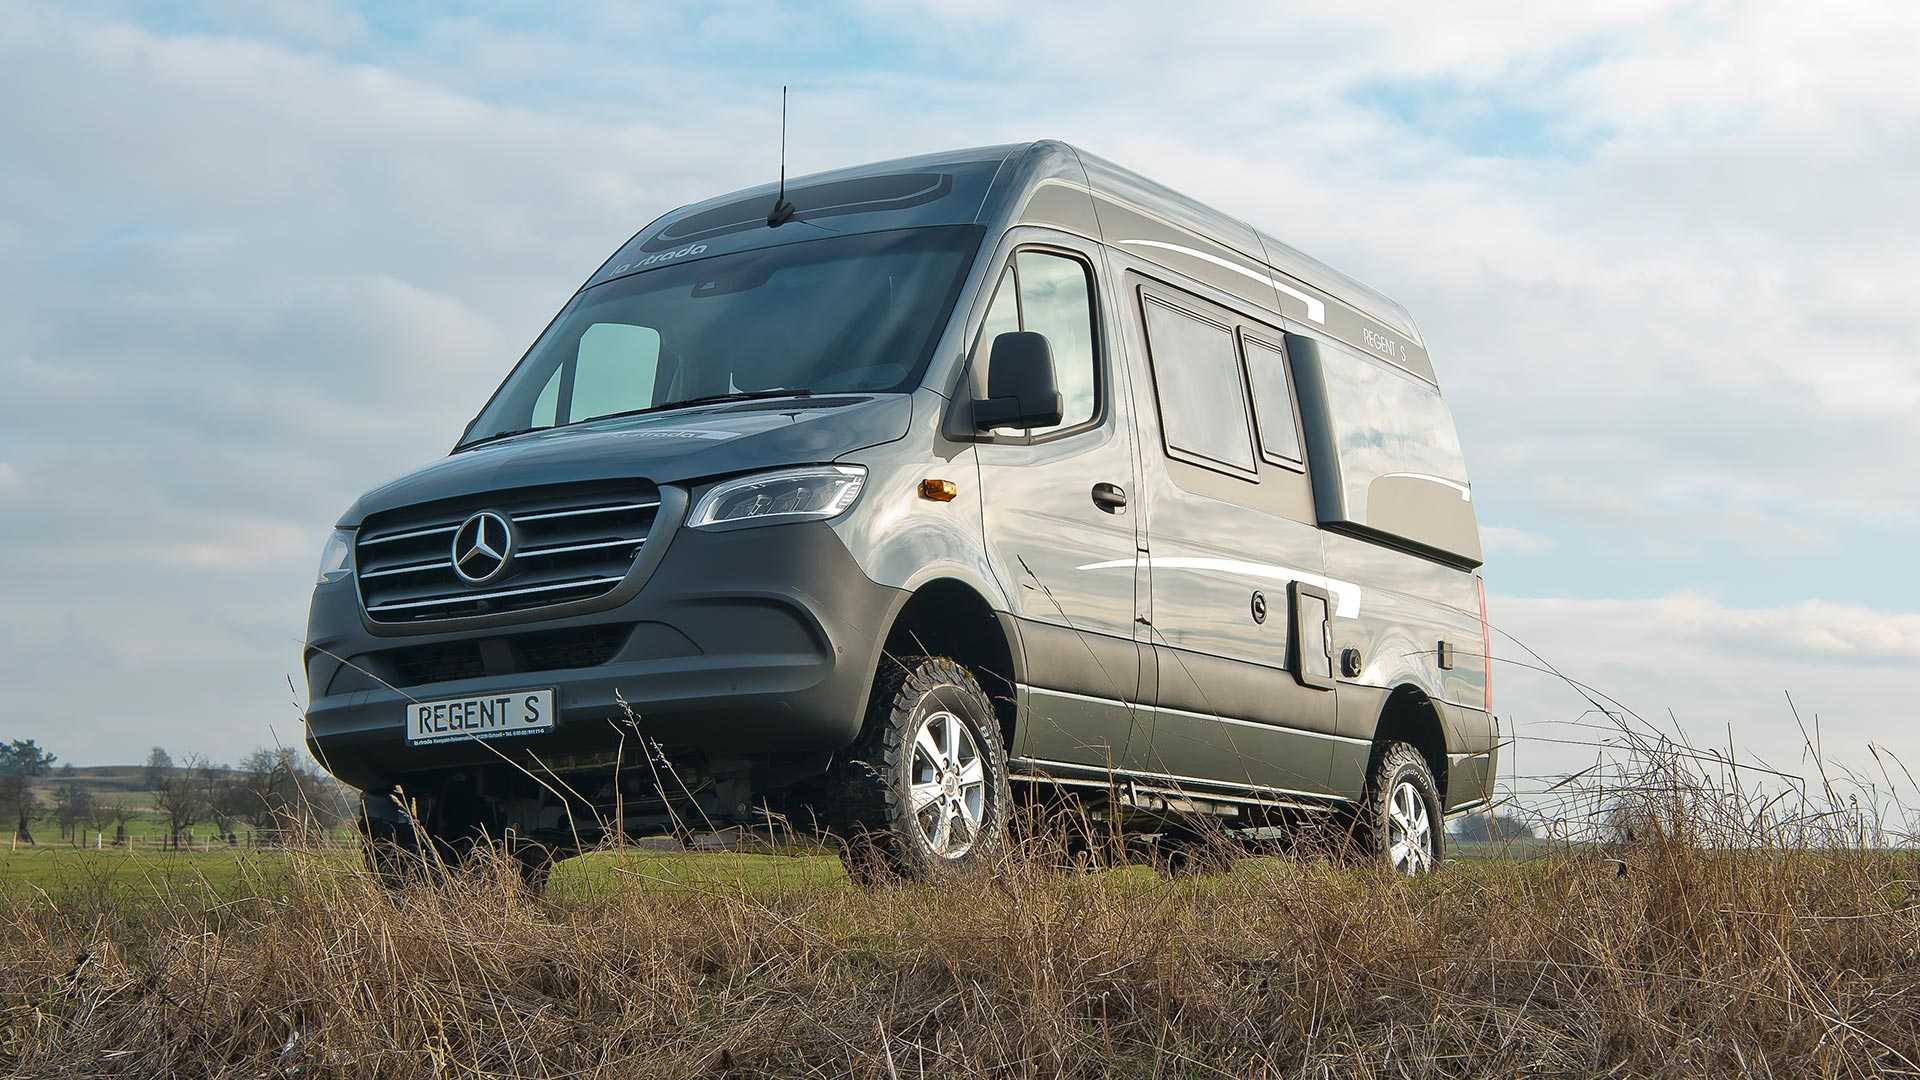 Mercedes Sprinter Turned Into Lifted 4x4 Camper